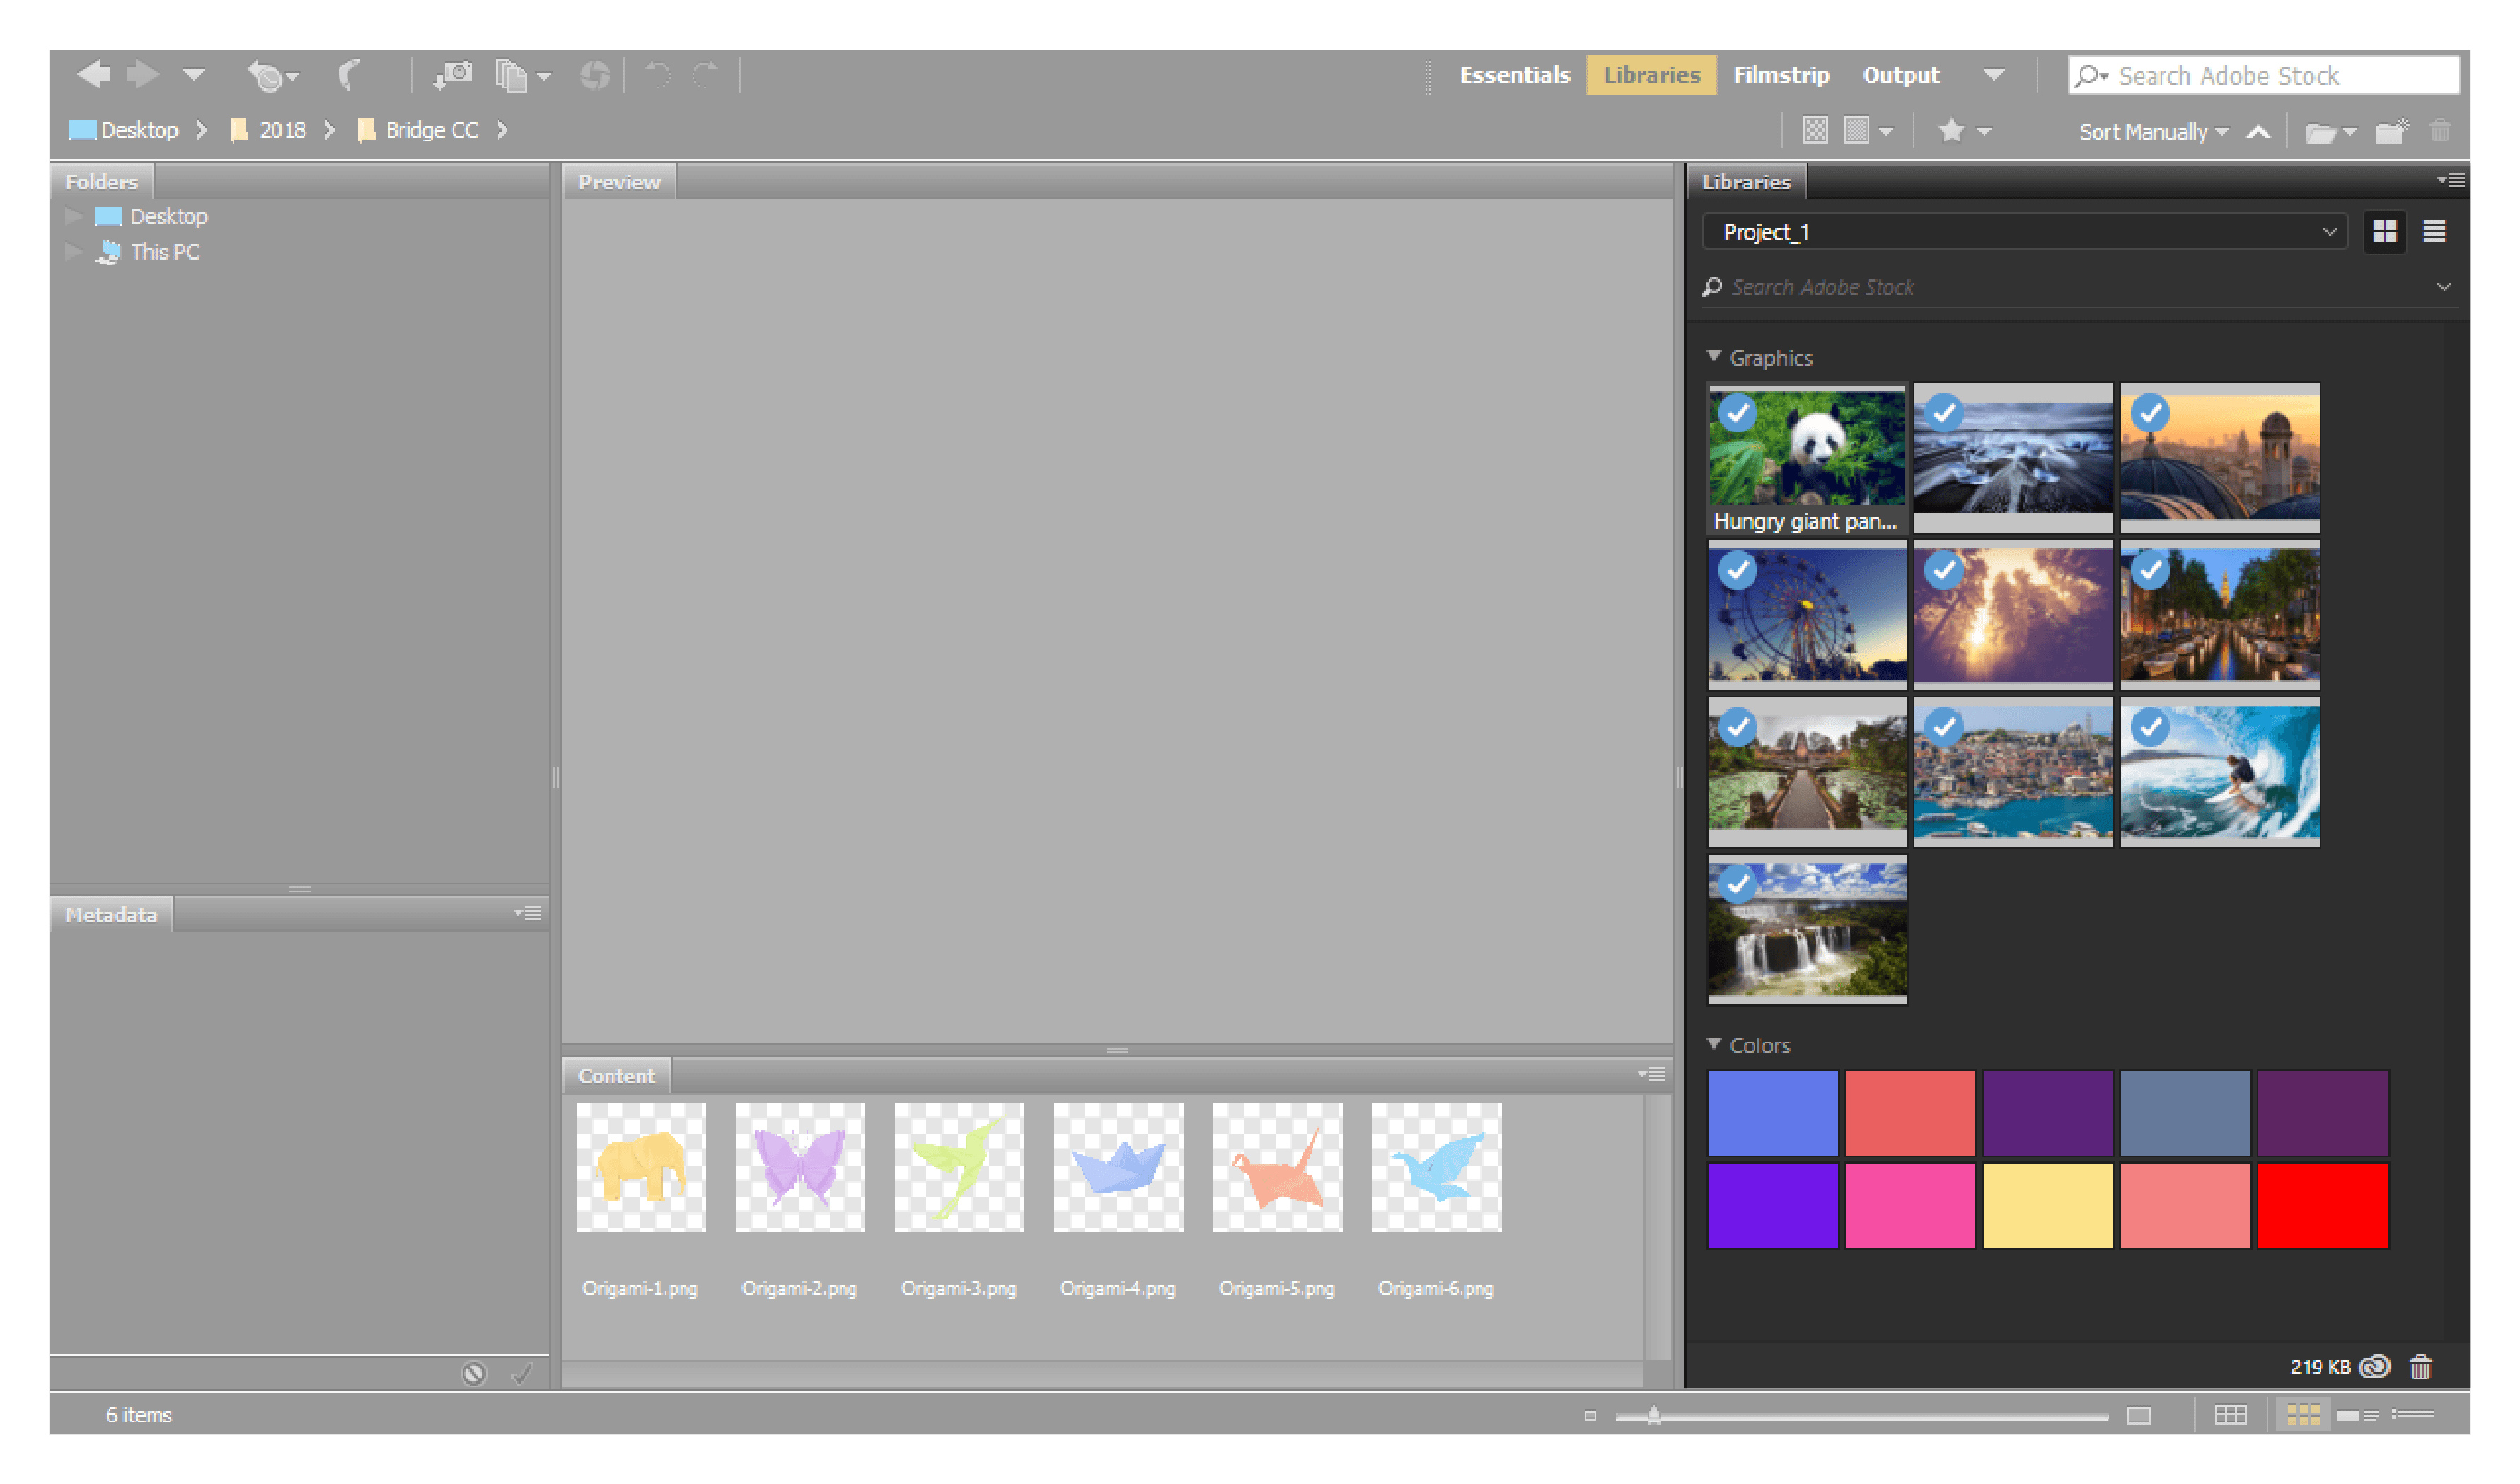 Access Creative Cloud Libraries in Bridge